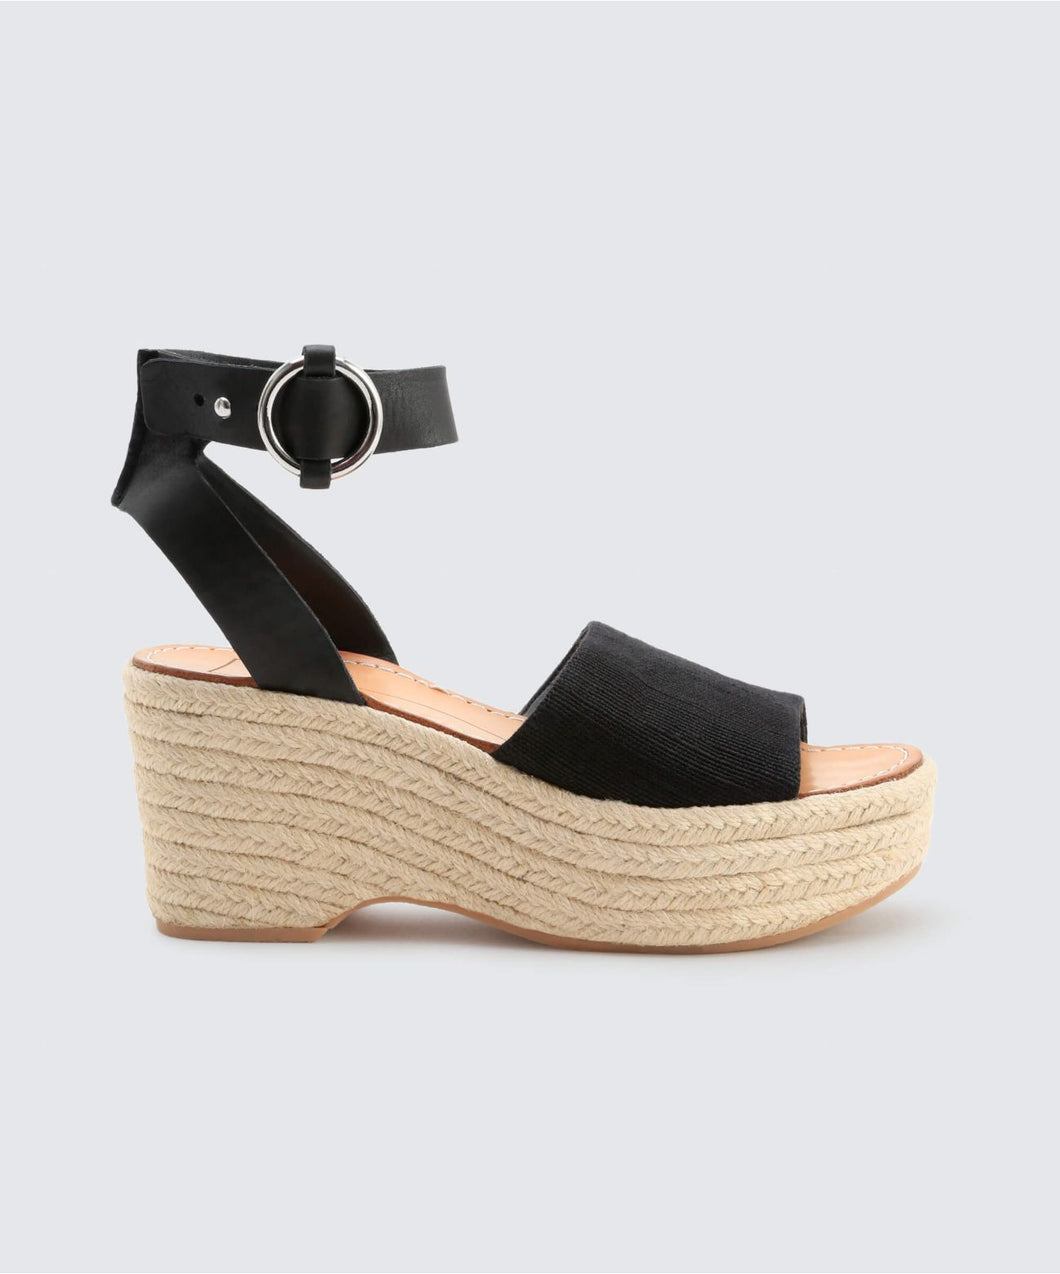 LESLY WEDGES BLACK -   Dolce Vita